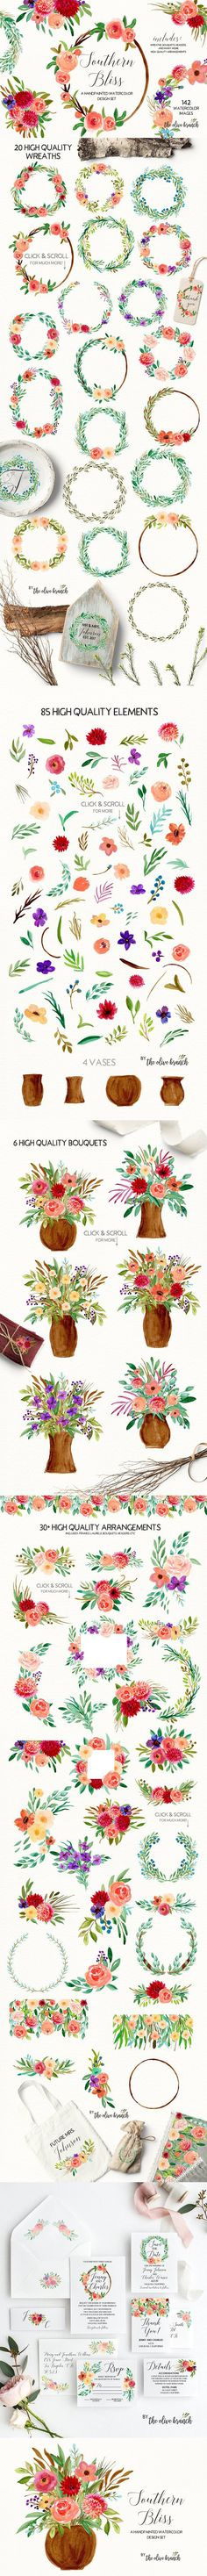 Southern Bliss Watercolor ClipArt . Watercolor Flowers